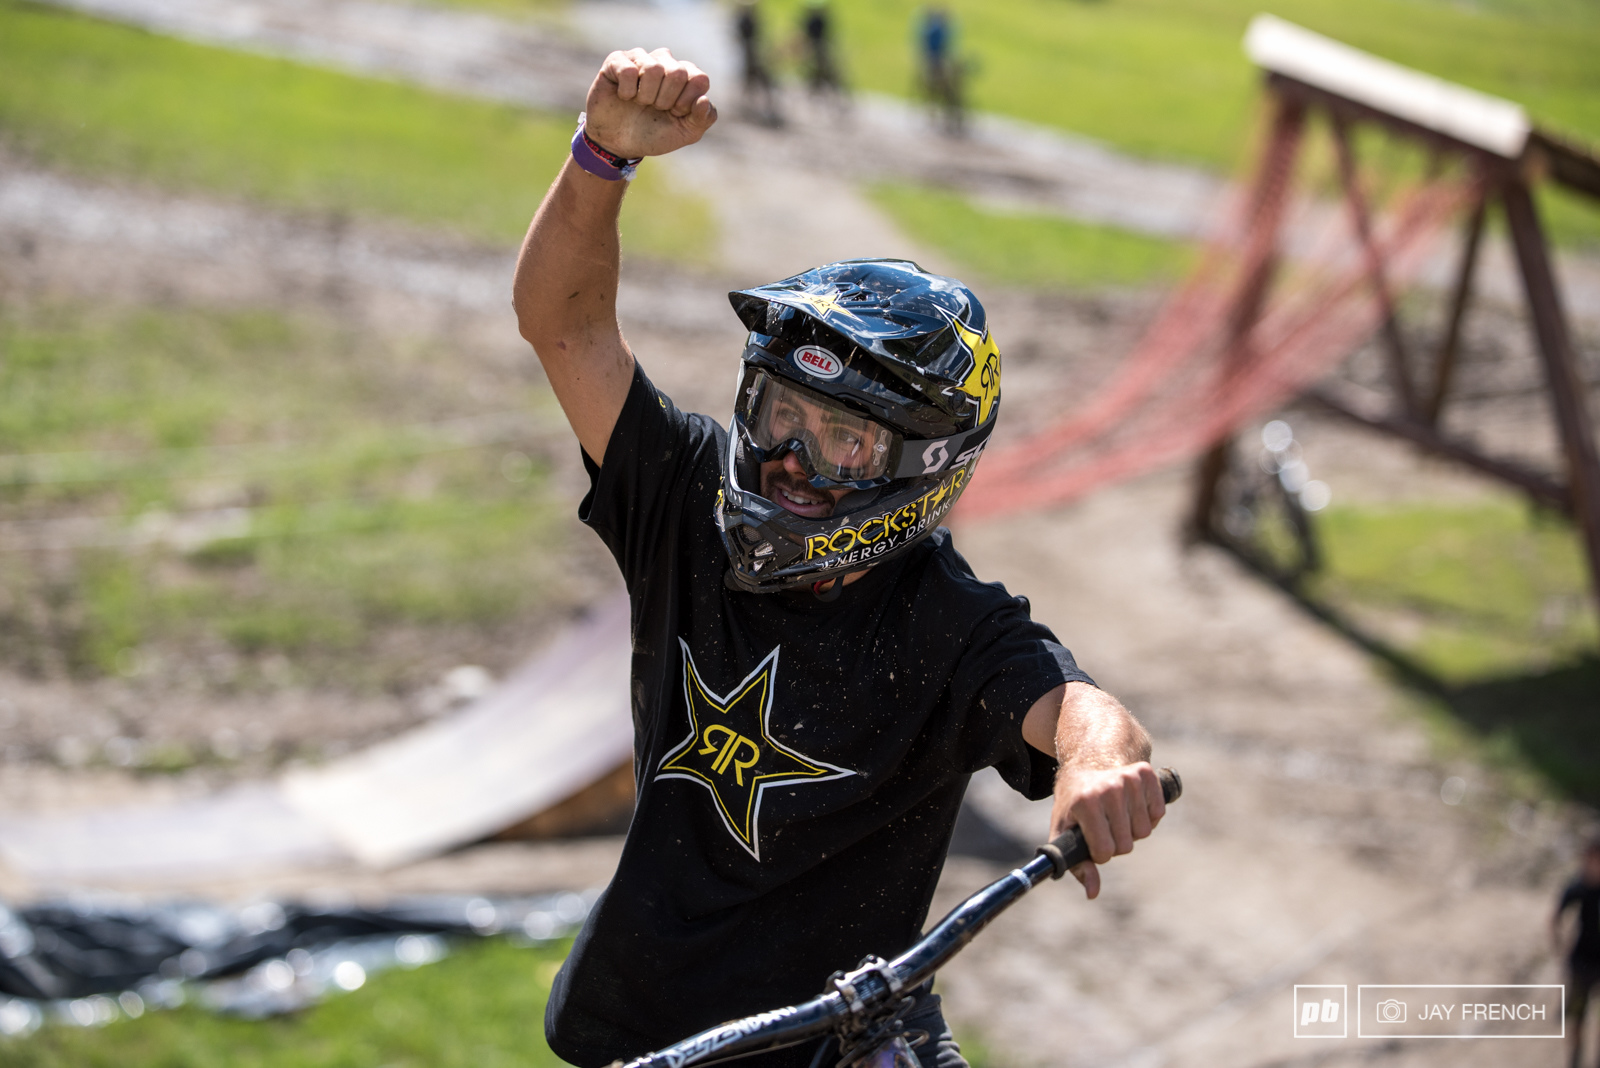 A Day in the Life with Louis Reboul Crankworx Les Gets